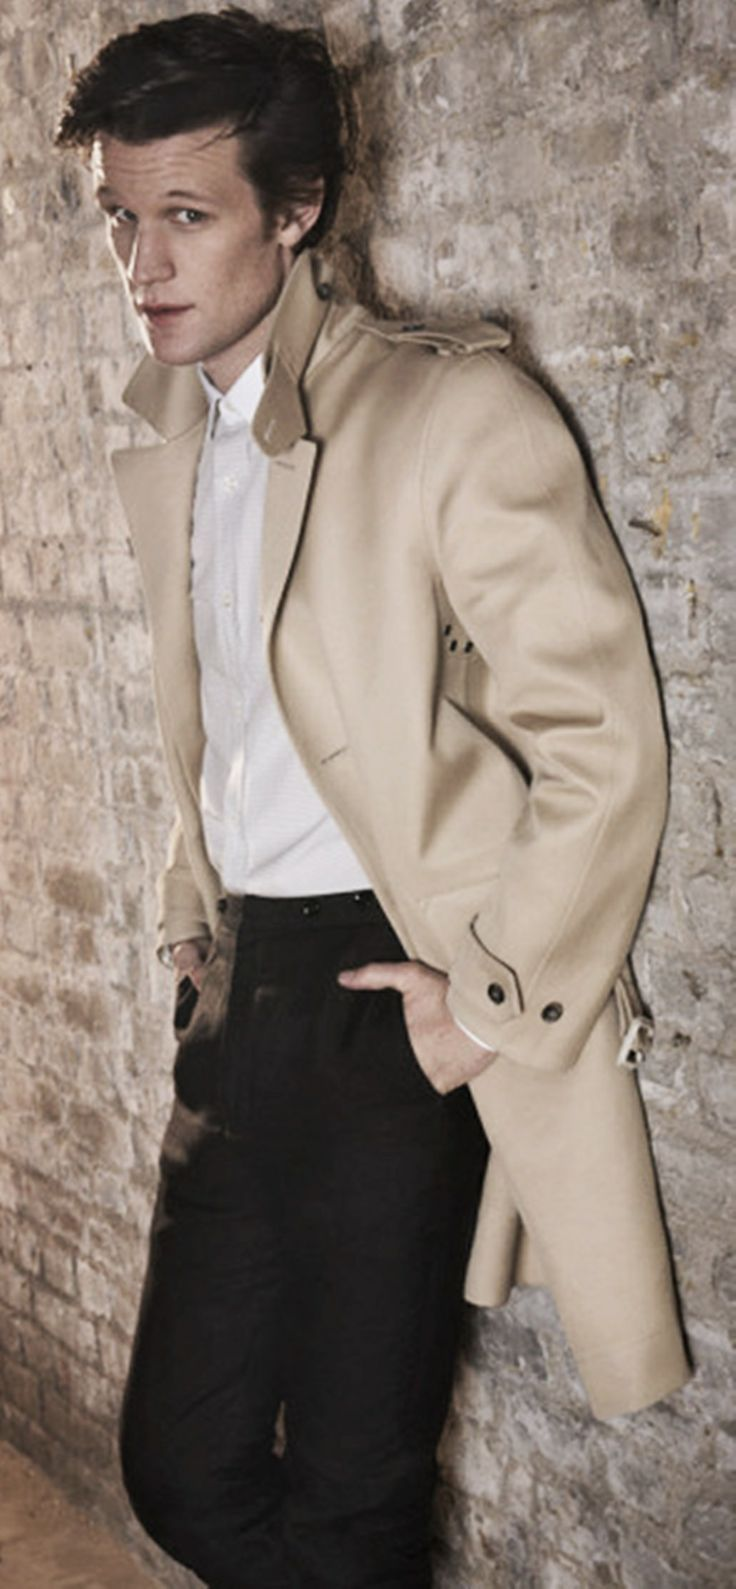 Wonderful male portrait pose, beautifully demonstrated by Mr. Matt Smith.